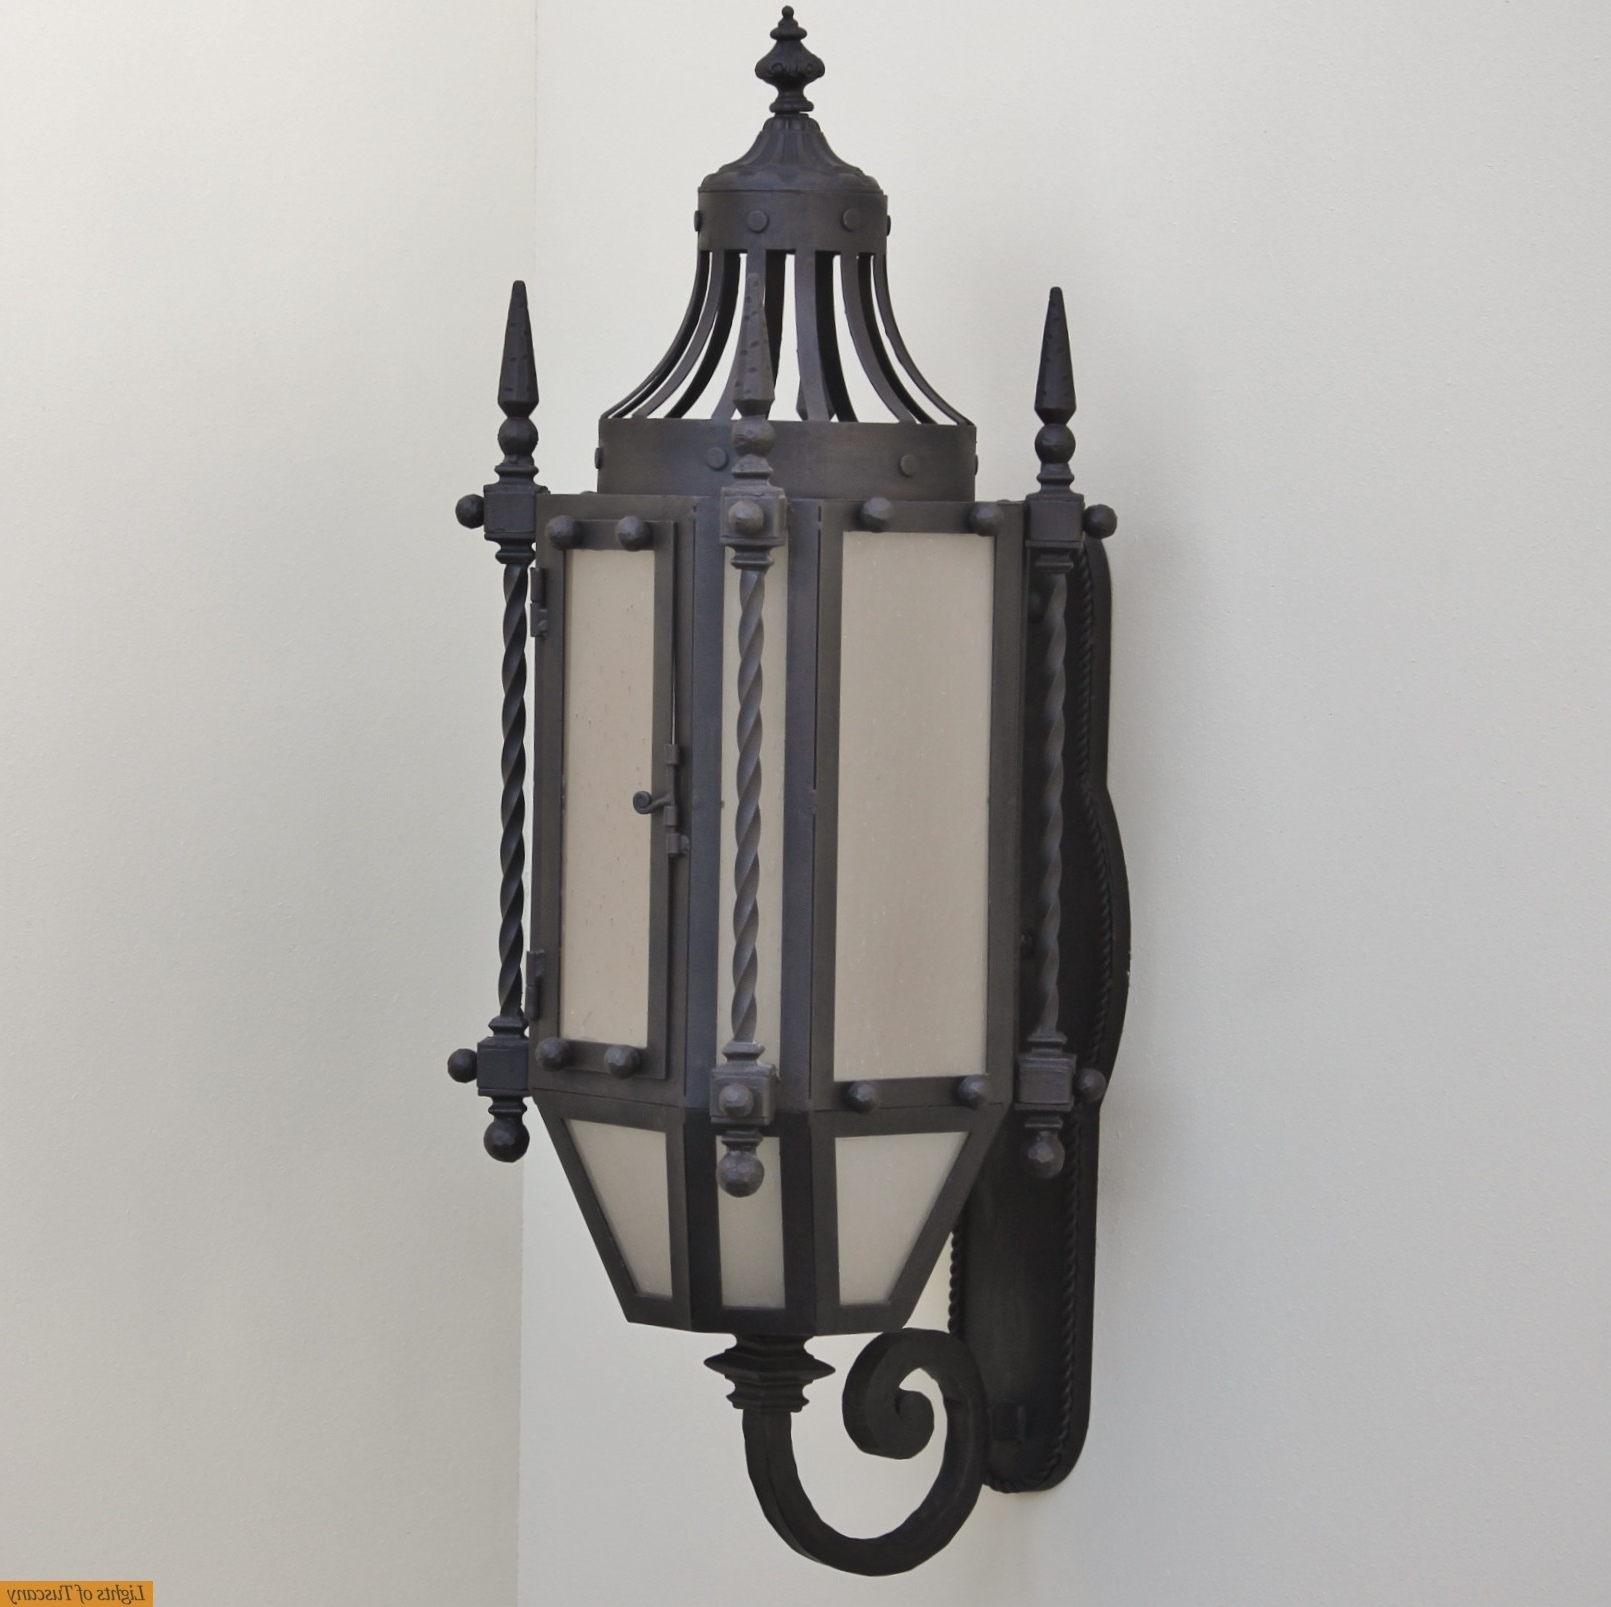 Gothic Outdoor Wall Lighting Regarding Best And Newest Lights Of Tuscany 7048 3 Wrought Iron Gothic/ Medieval Style Wall (Gallery 2 of 20)